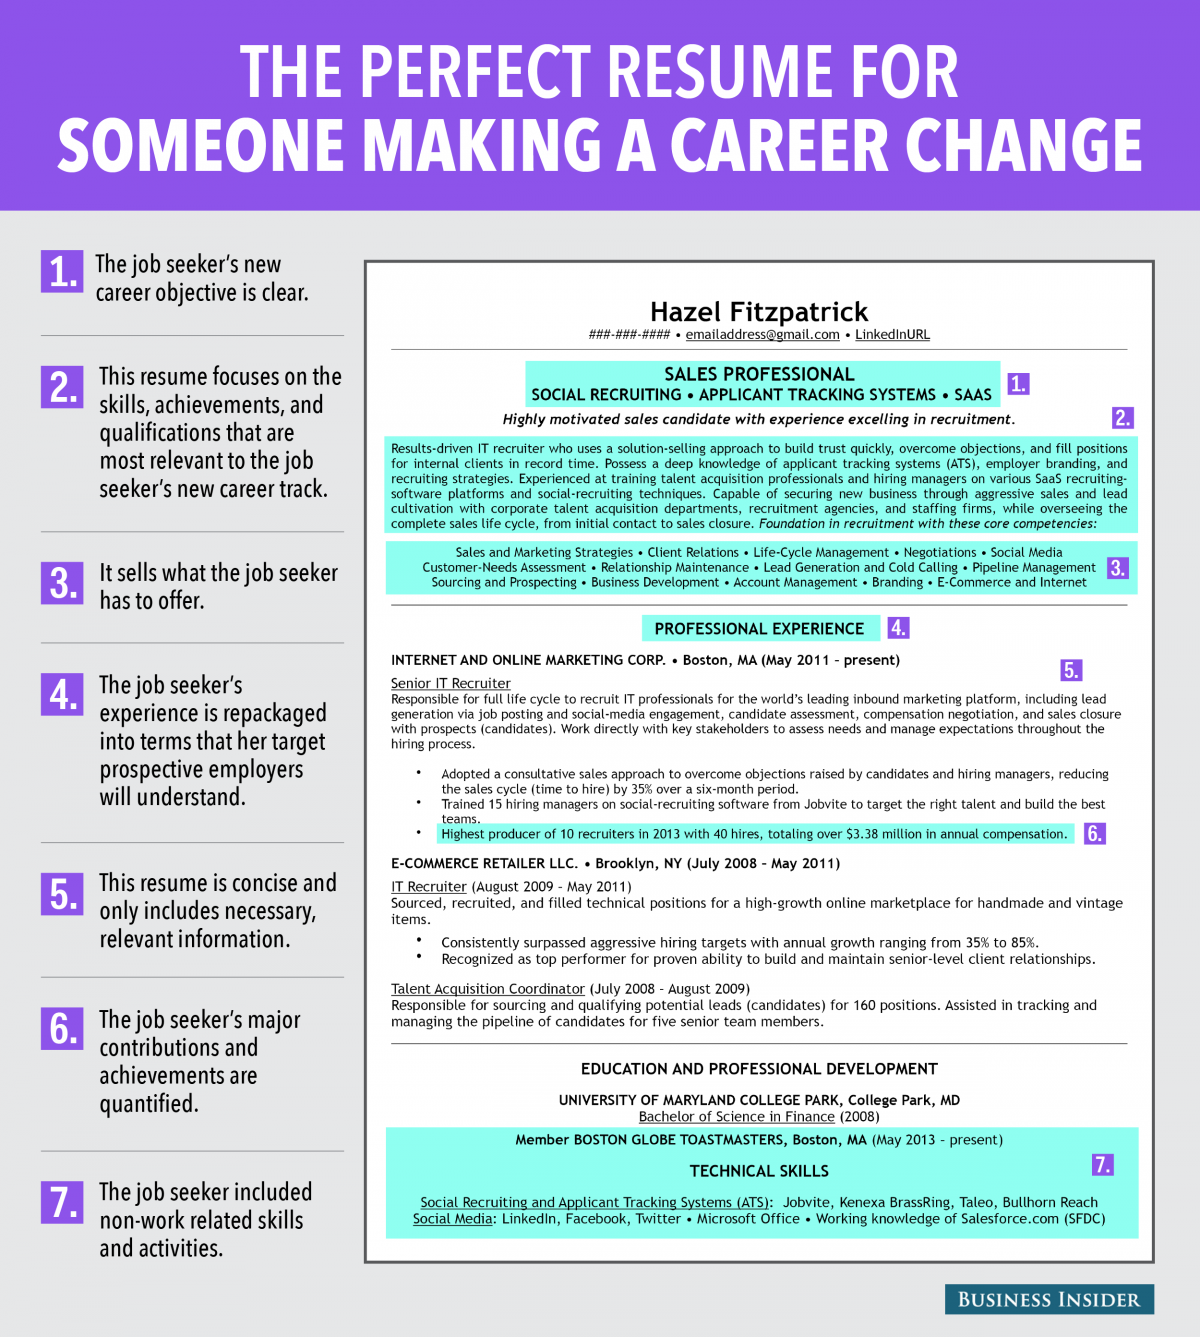 Build A Resume Online Custom 7 Reasons This Is An Excellent Resume For Someone Making A Career